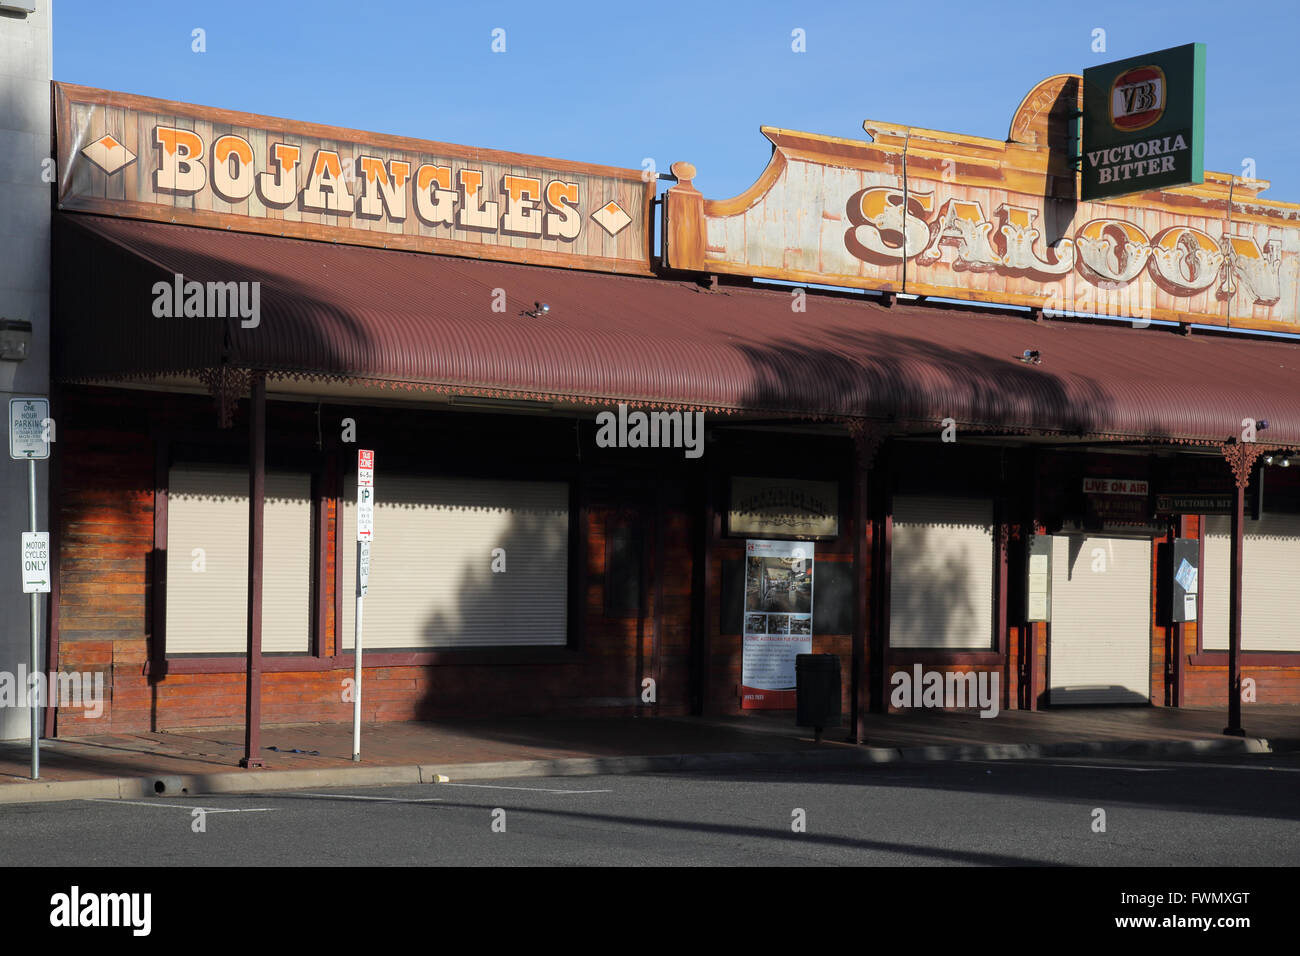 bojangles saloon and bar  in alice springs in the northern territory of australia - Stock Image